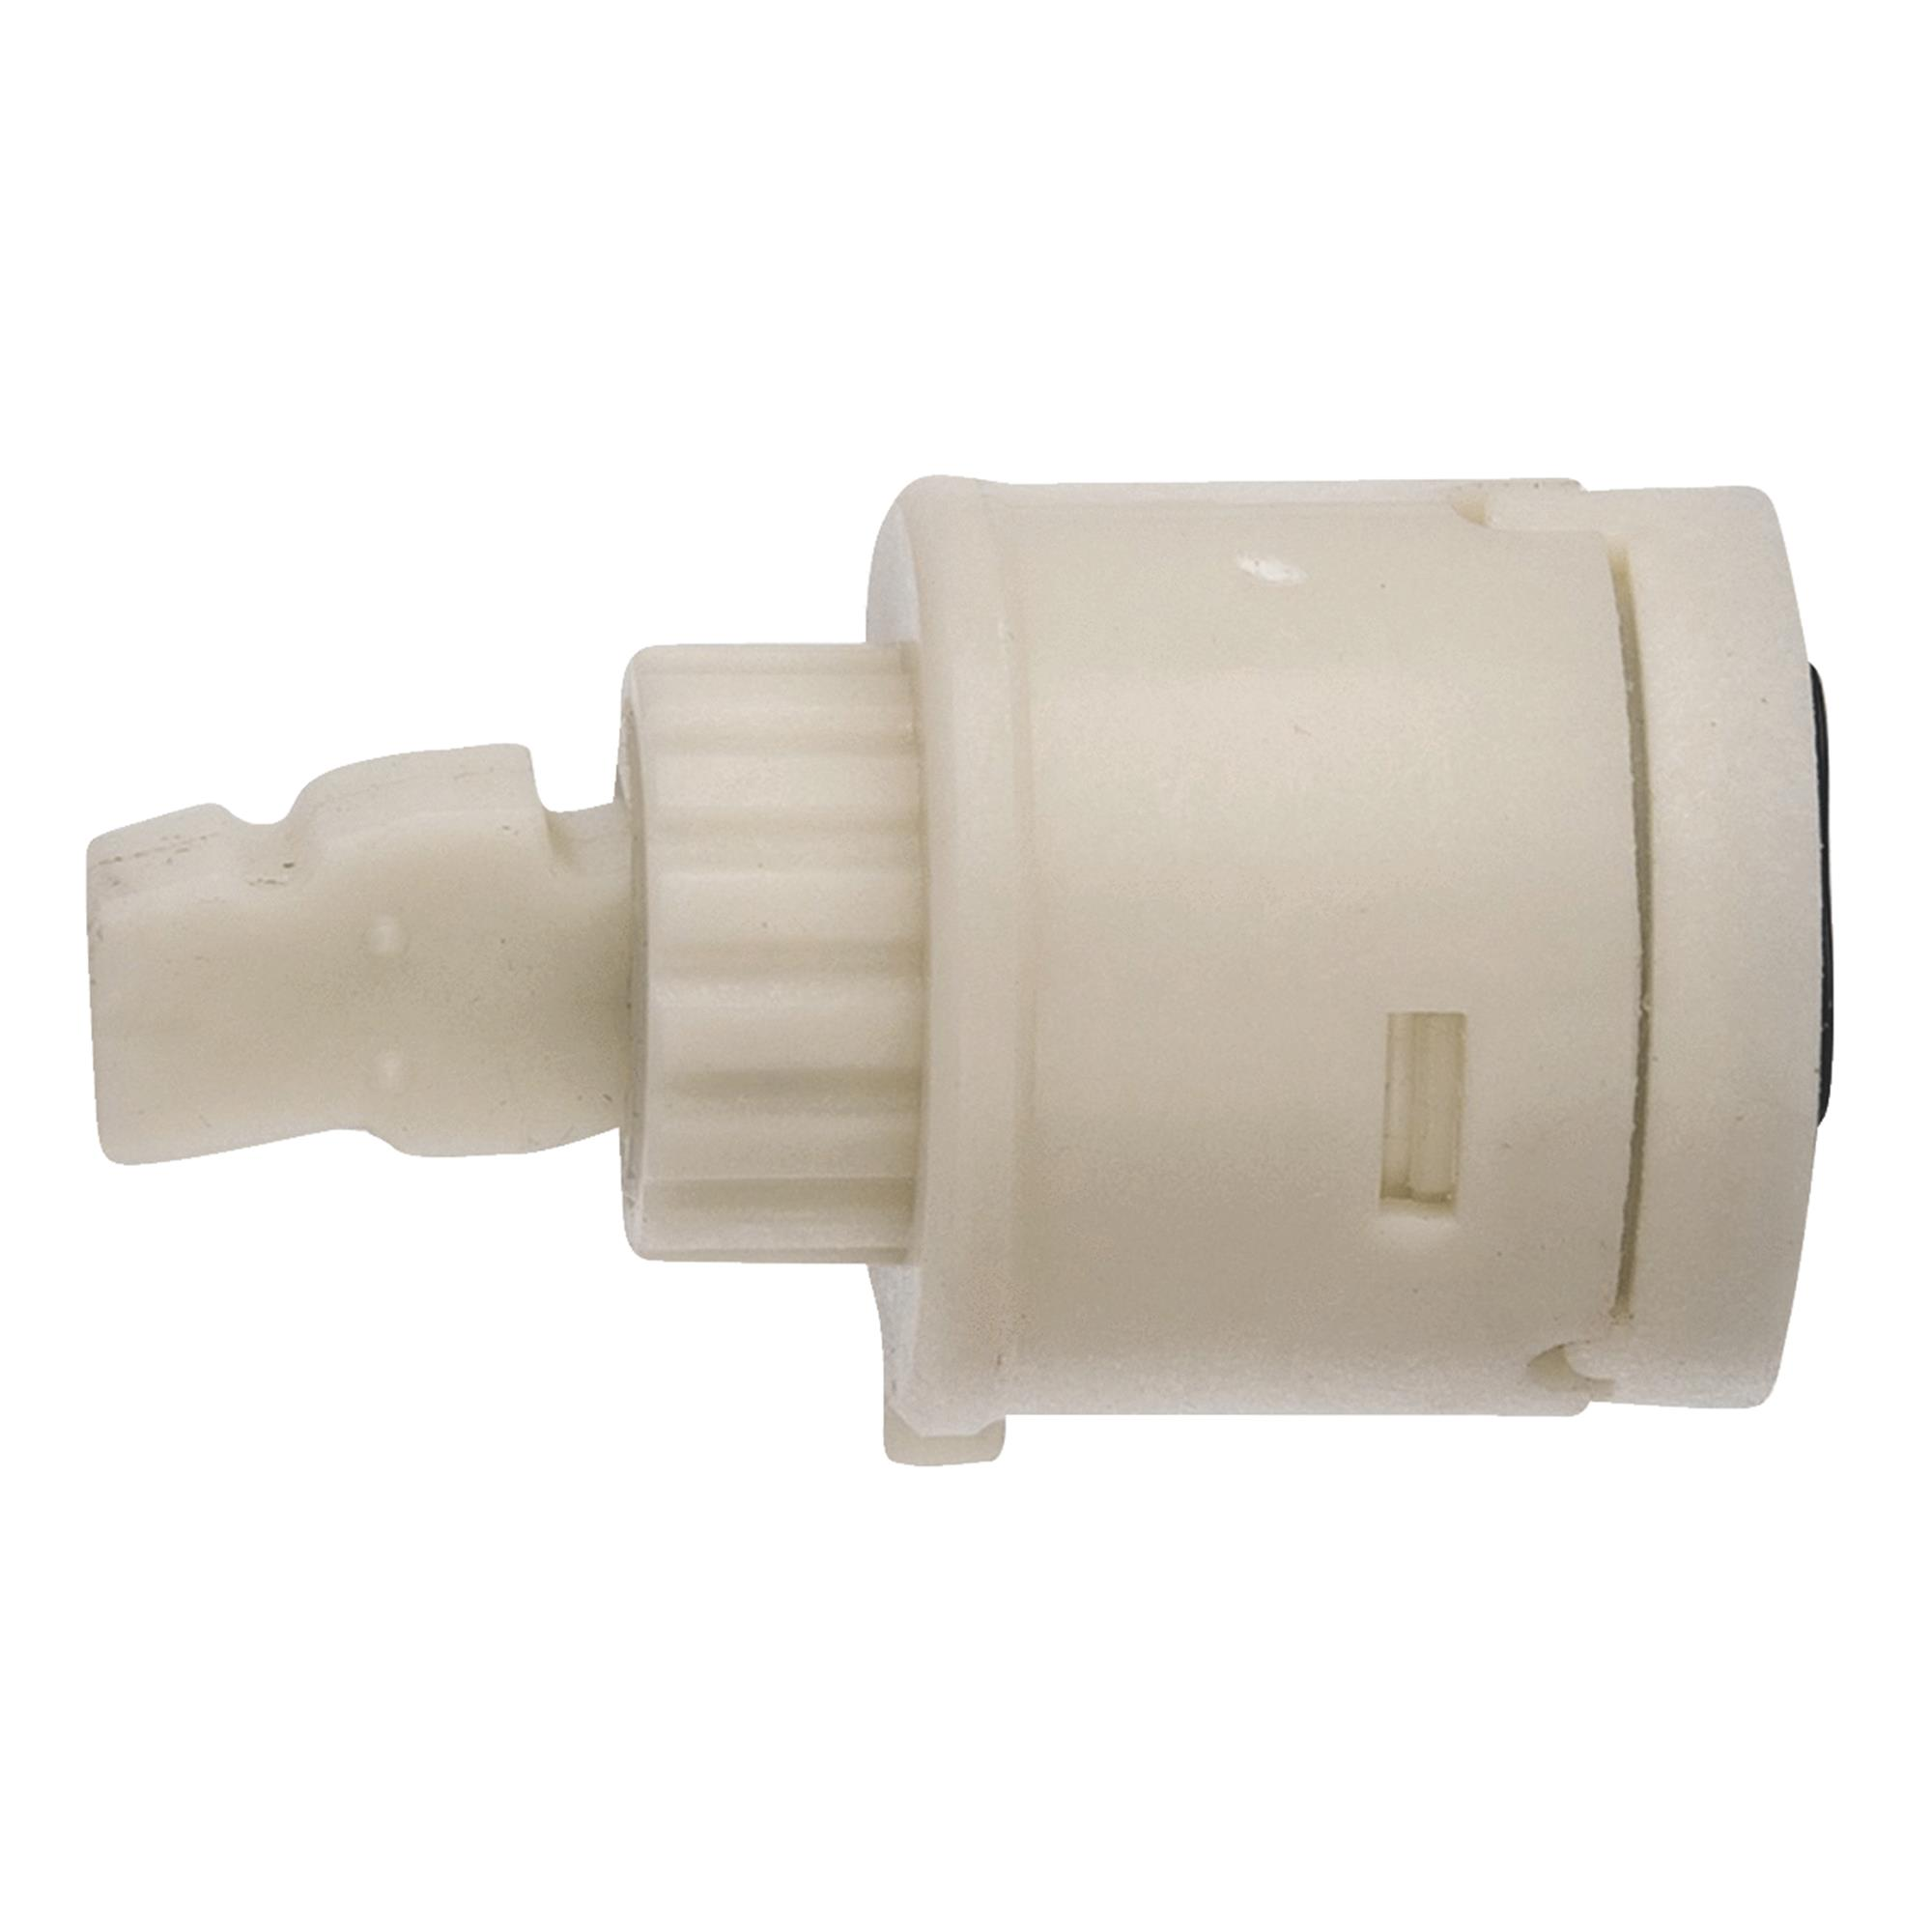 Ceramic Disk Stem Faucet Cartridge For Price Pfister by Danco